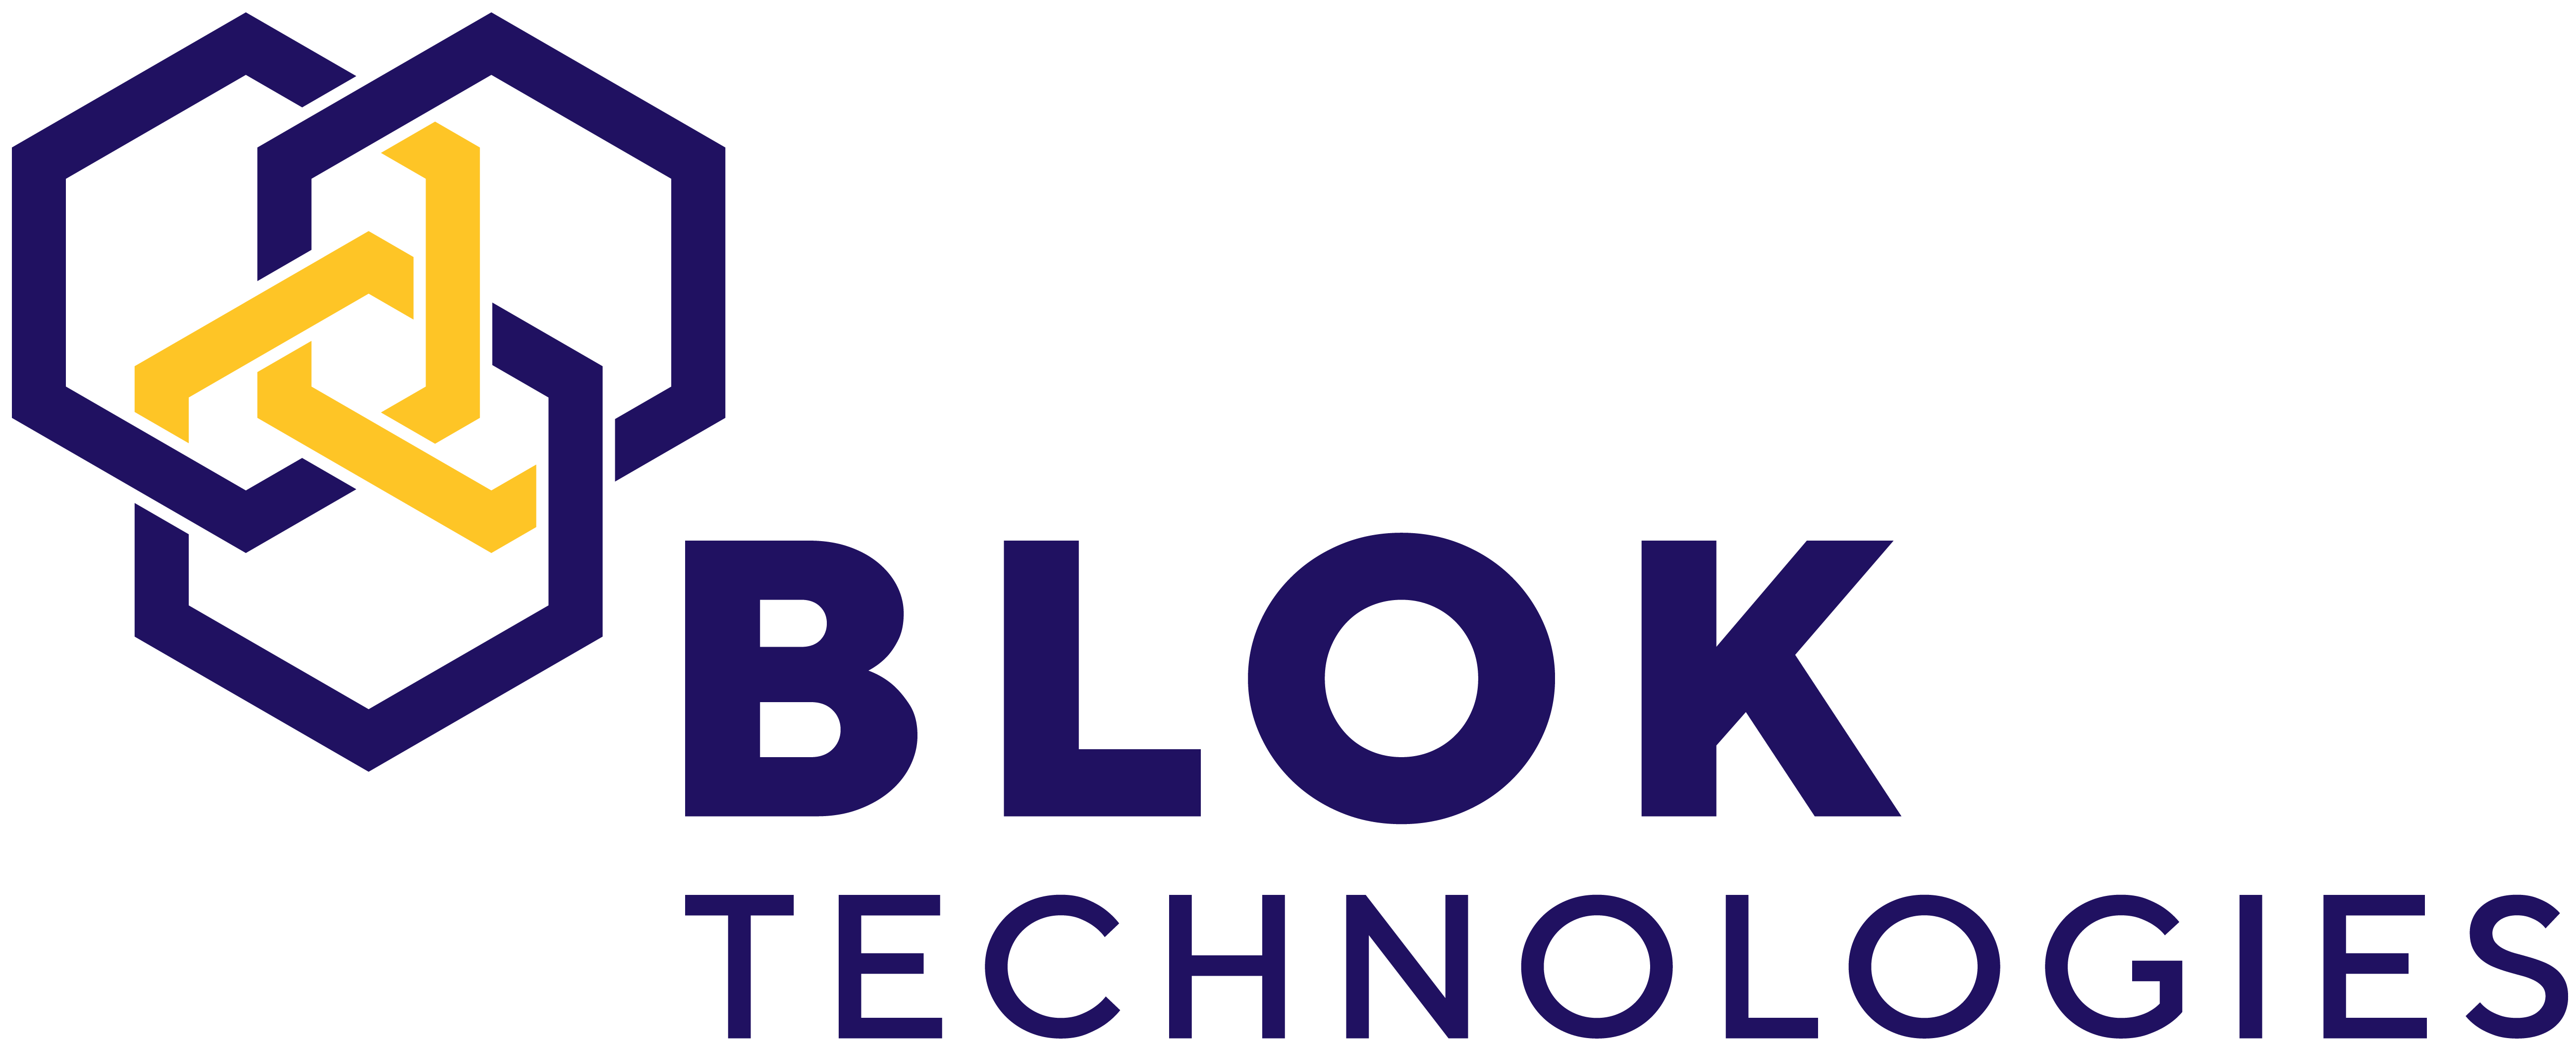 globenewswire.com - BLOK Technologies Inc. - BLOK Technologies Signs MOU with Visionary Private Equity Group to Form Proposed Joint Venture for the Development of Blockchain Applications for the Real Estate Industry